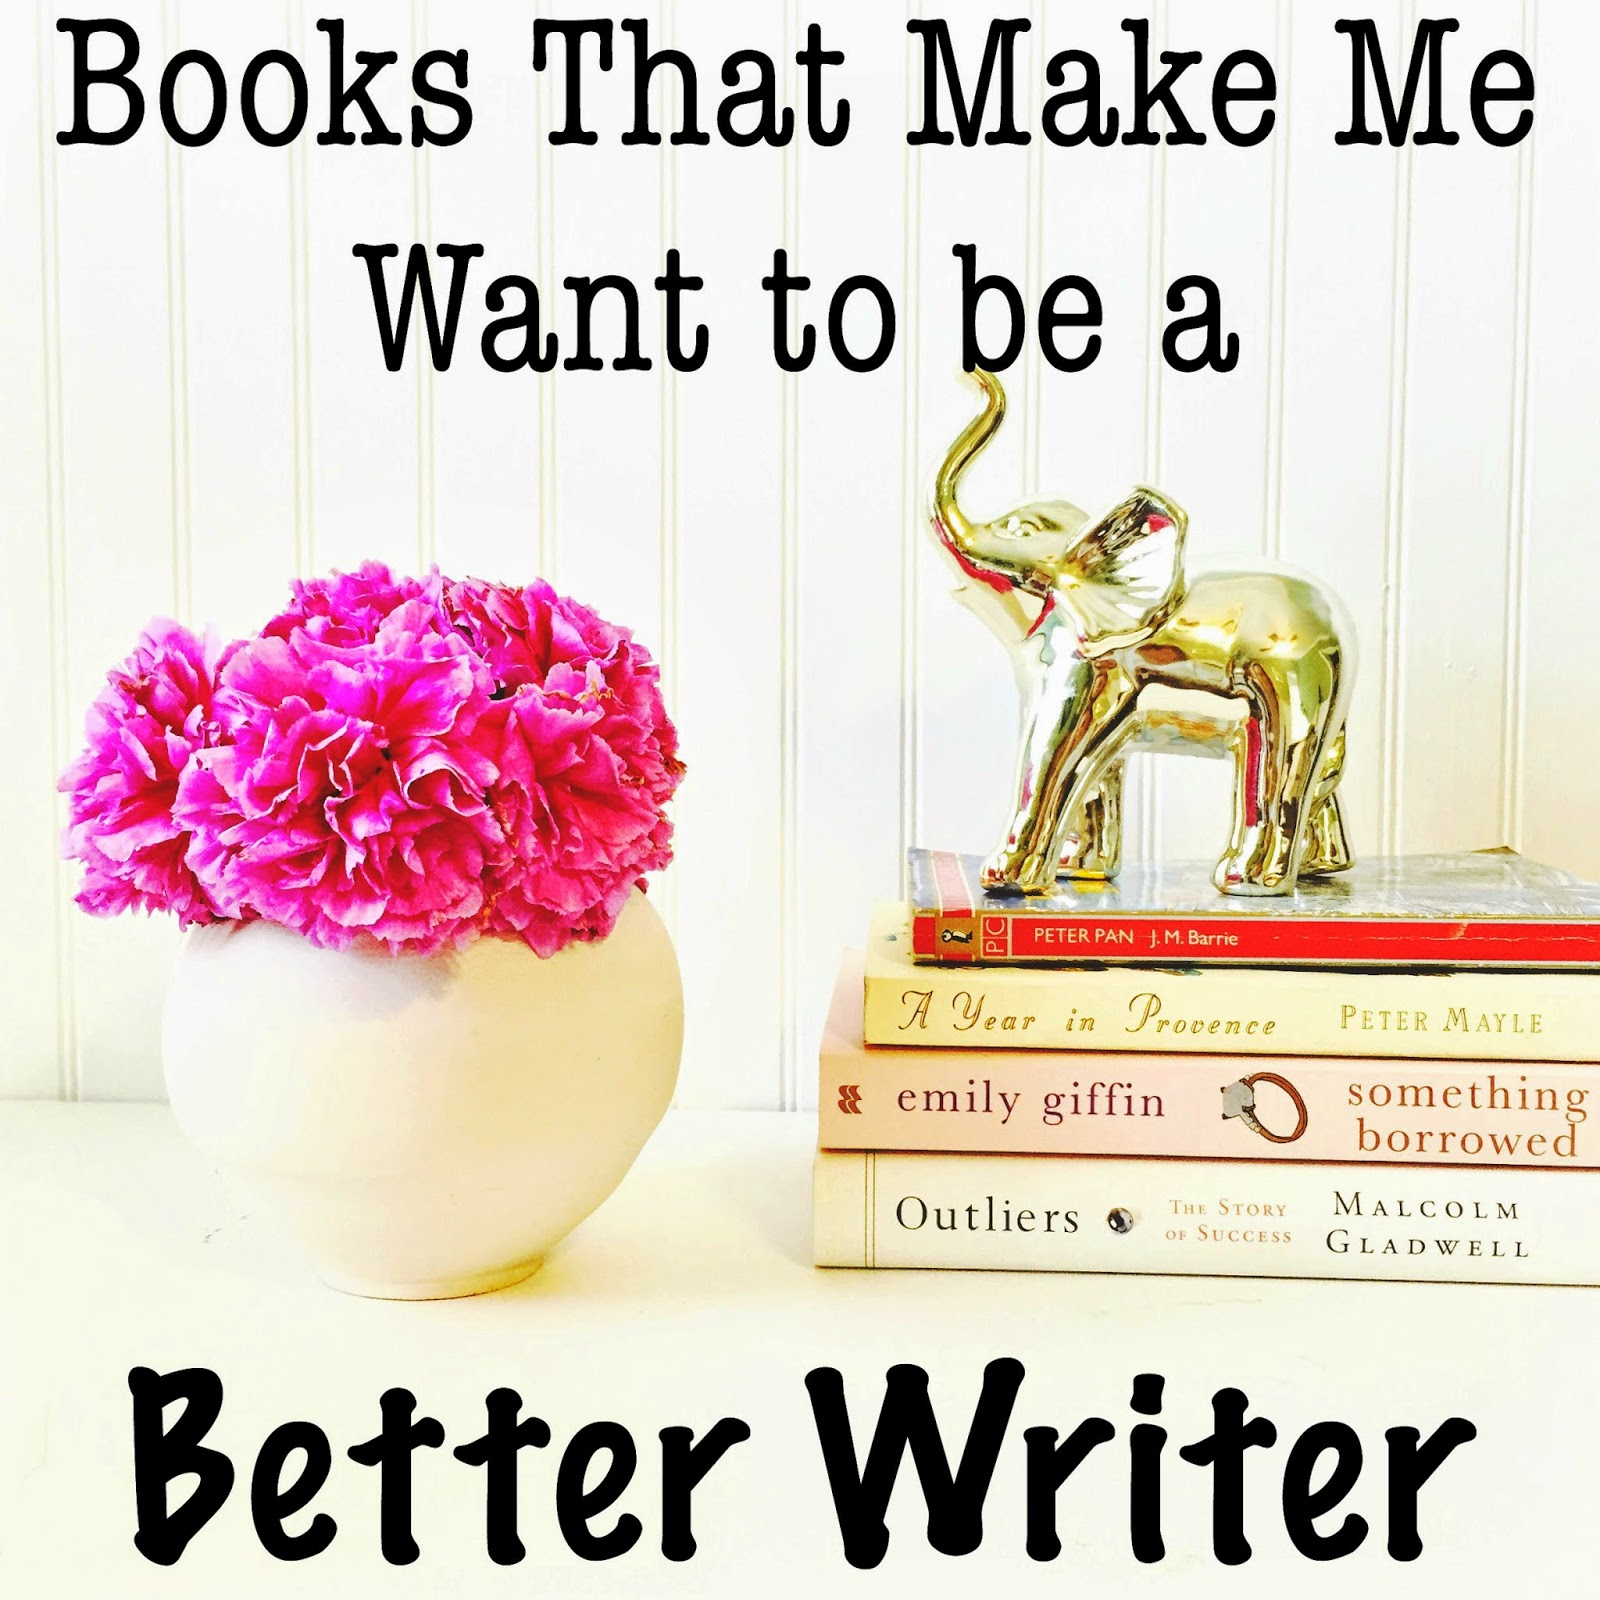 books that make me want to be a better writer